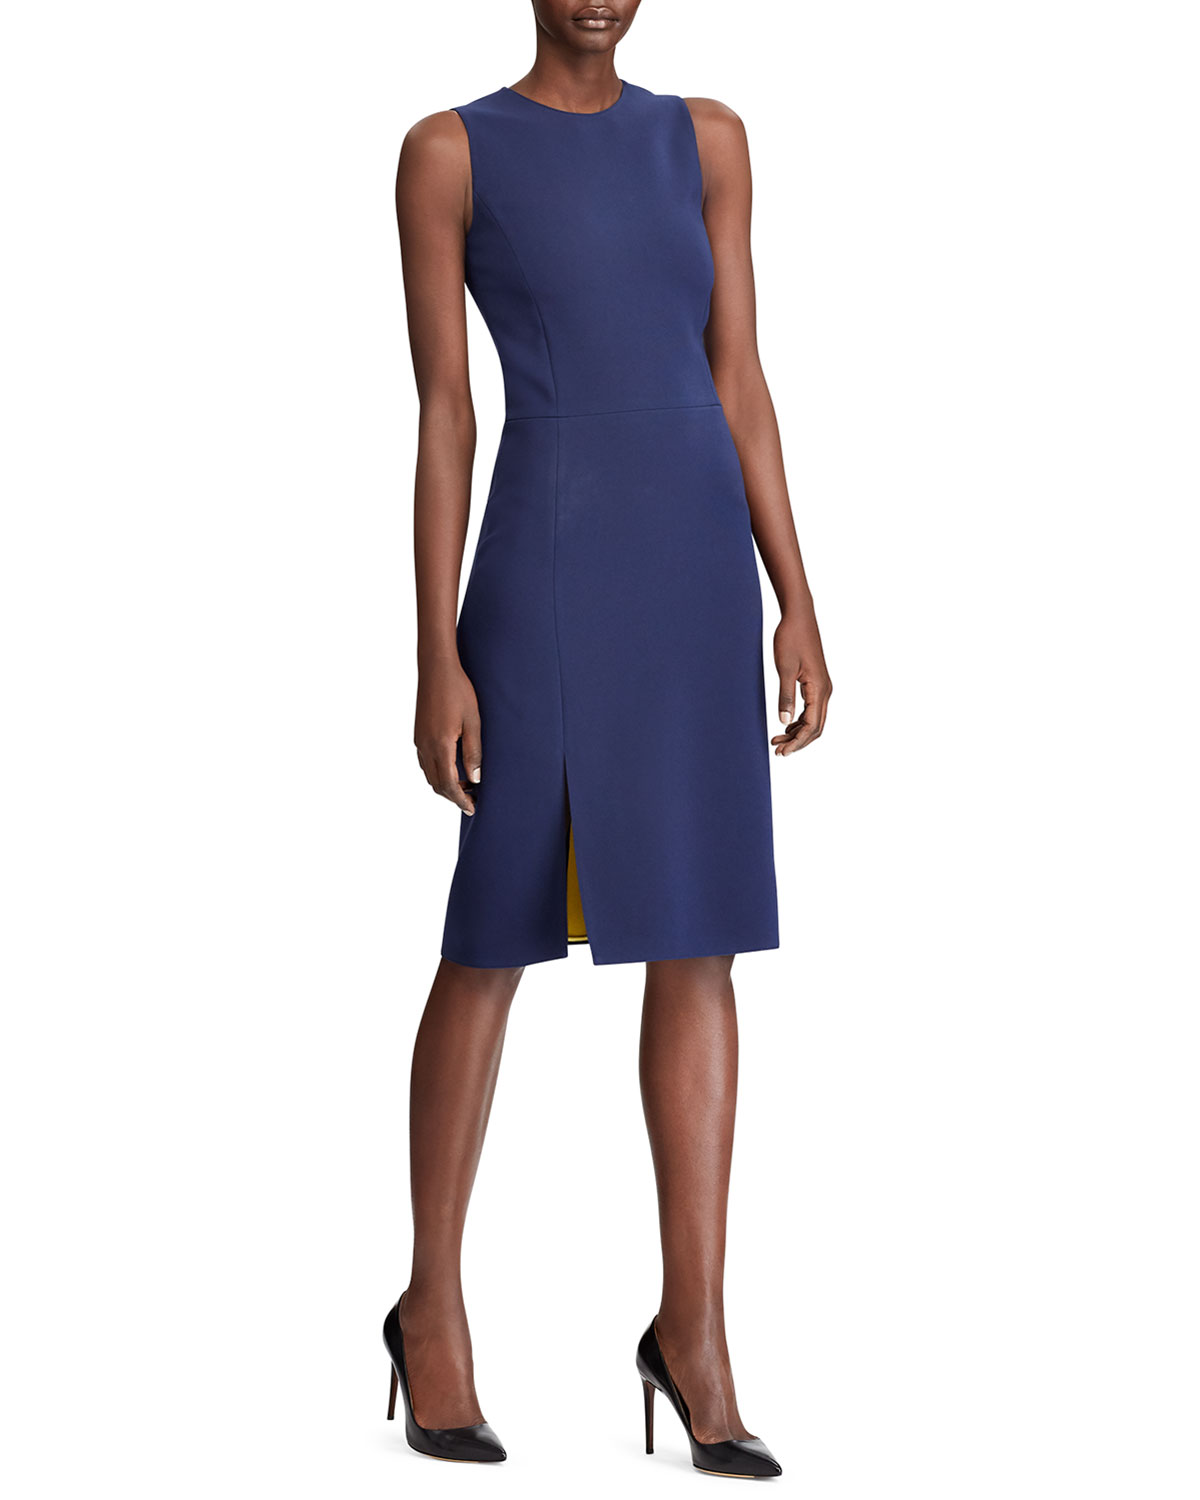 Ralph Lauren Collection Cora Sleeveless Cocktail Dress